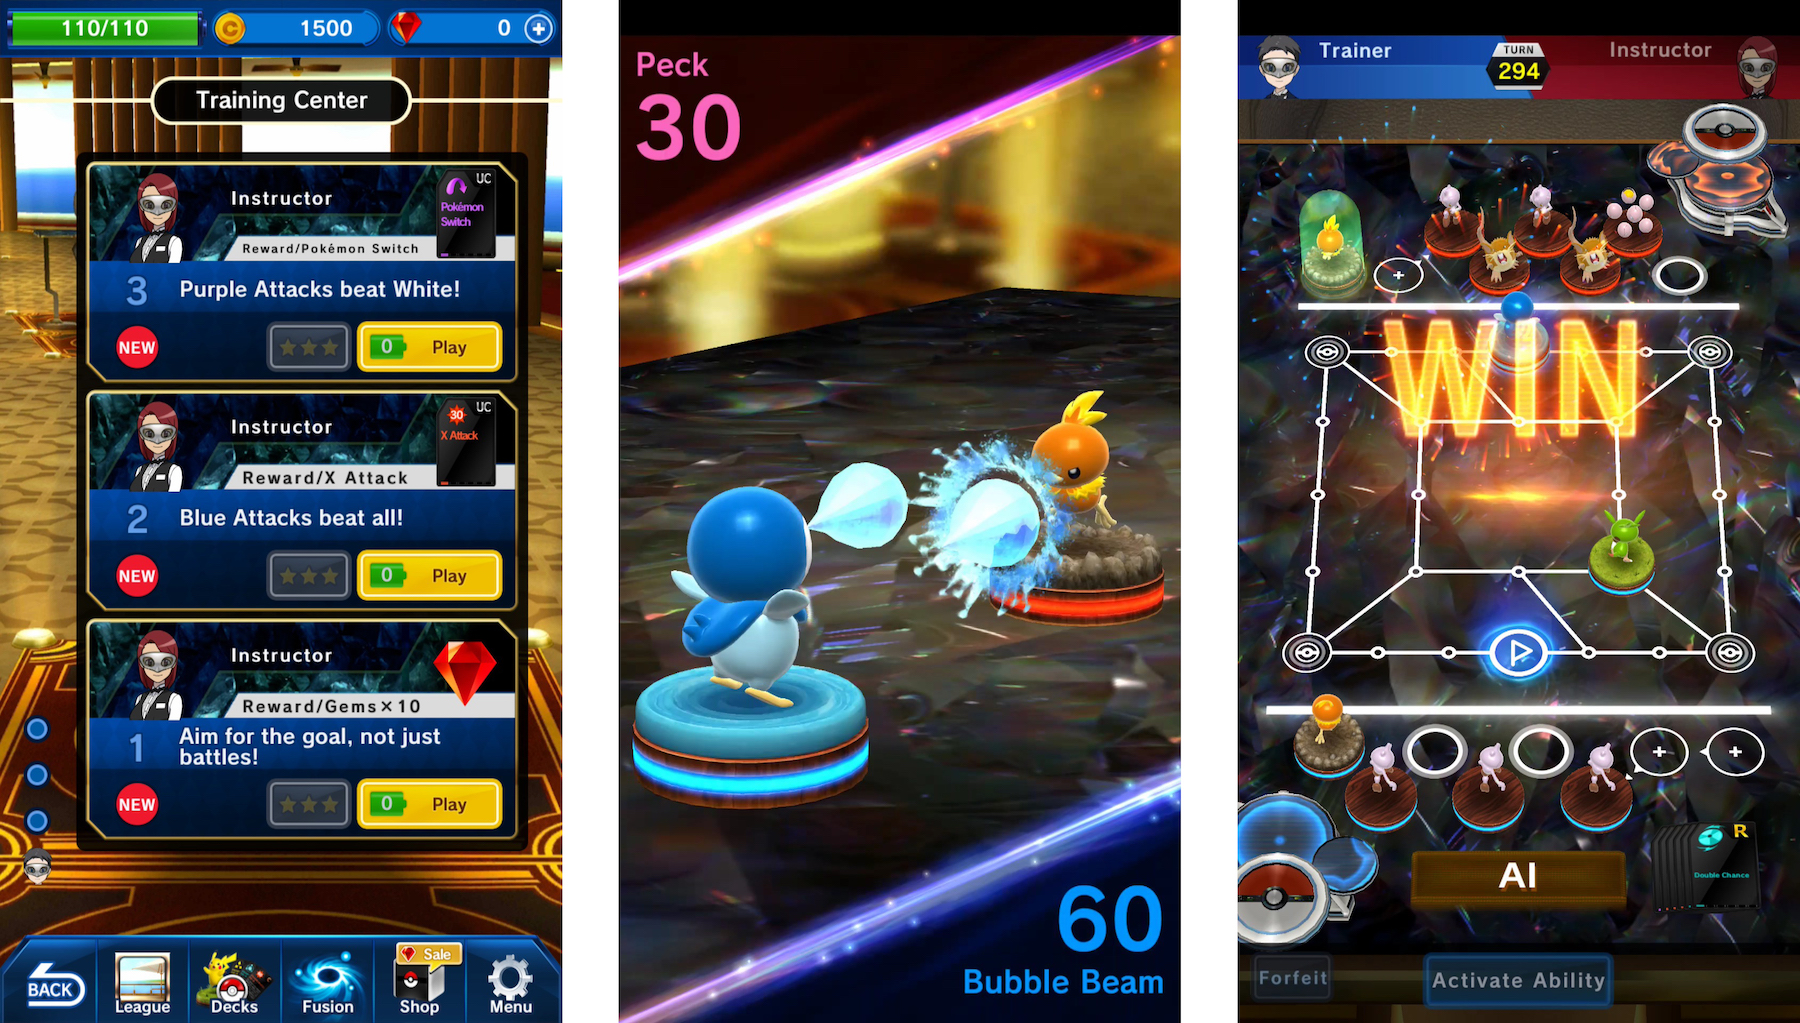 Pokémon launches Duel, a new free iOS and Android strategy battle